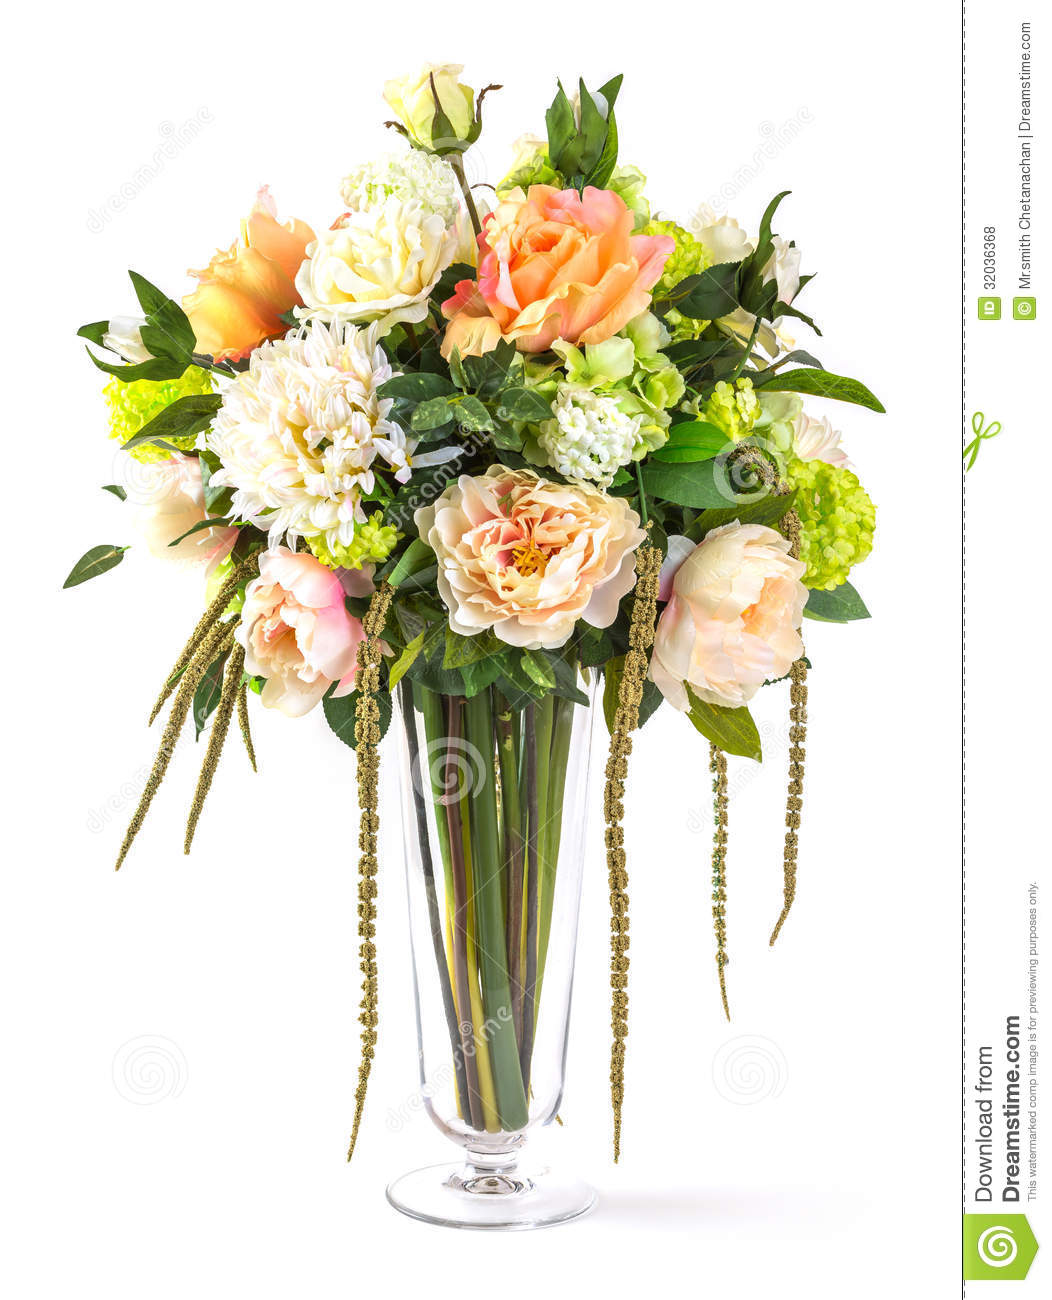 Bouquet of flowers in glass vase stock photo image of bouquet of flowers in glass vase reviewsmspy